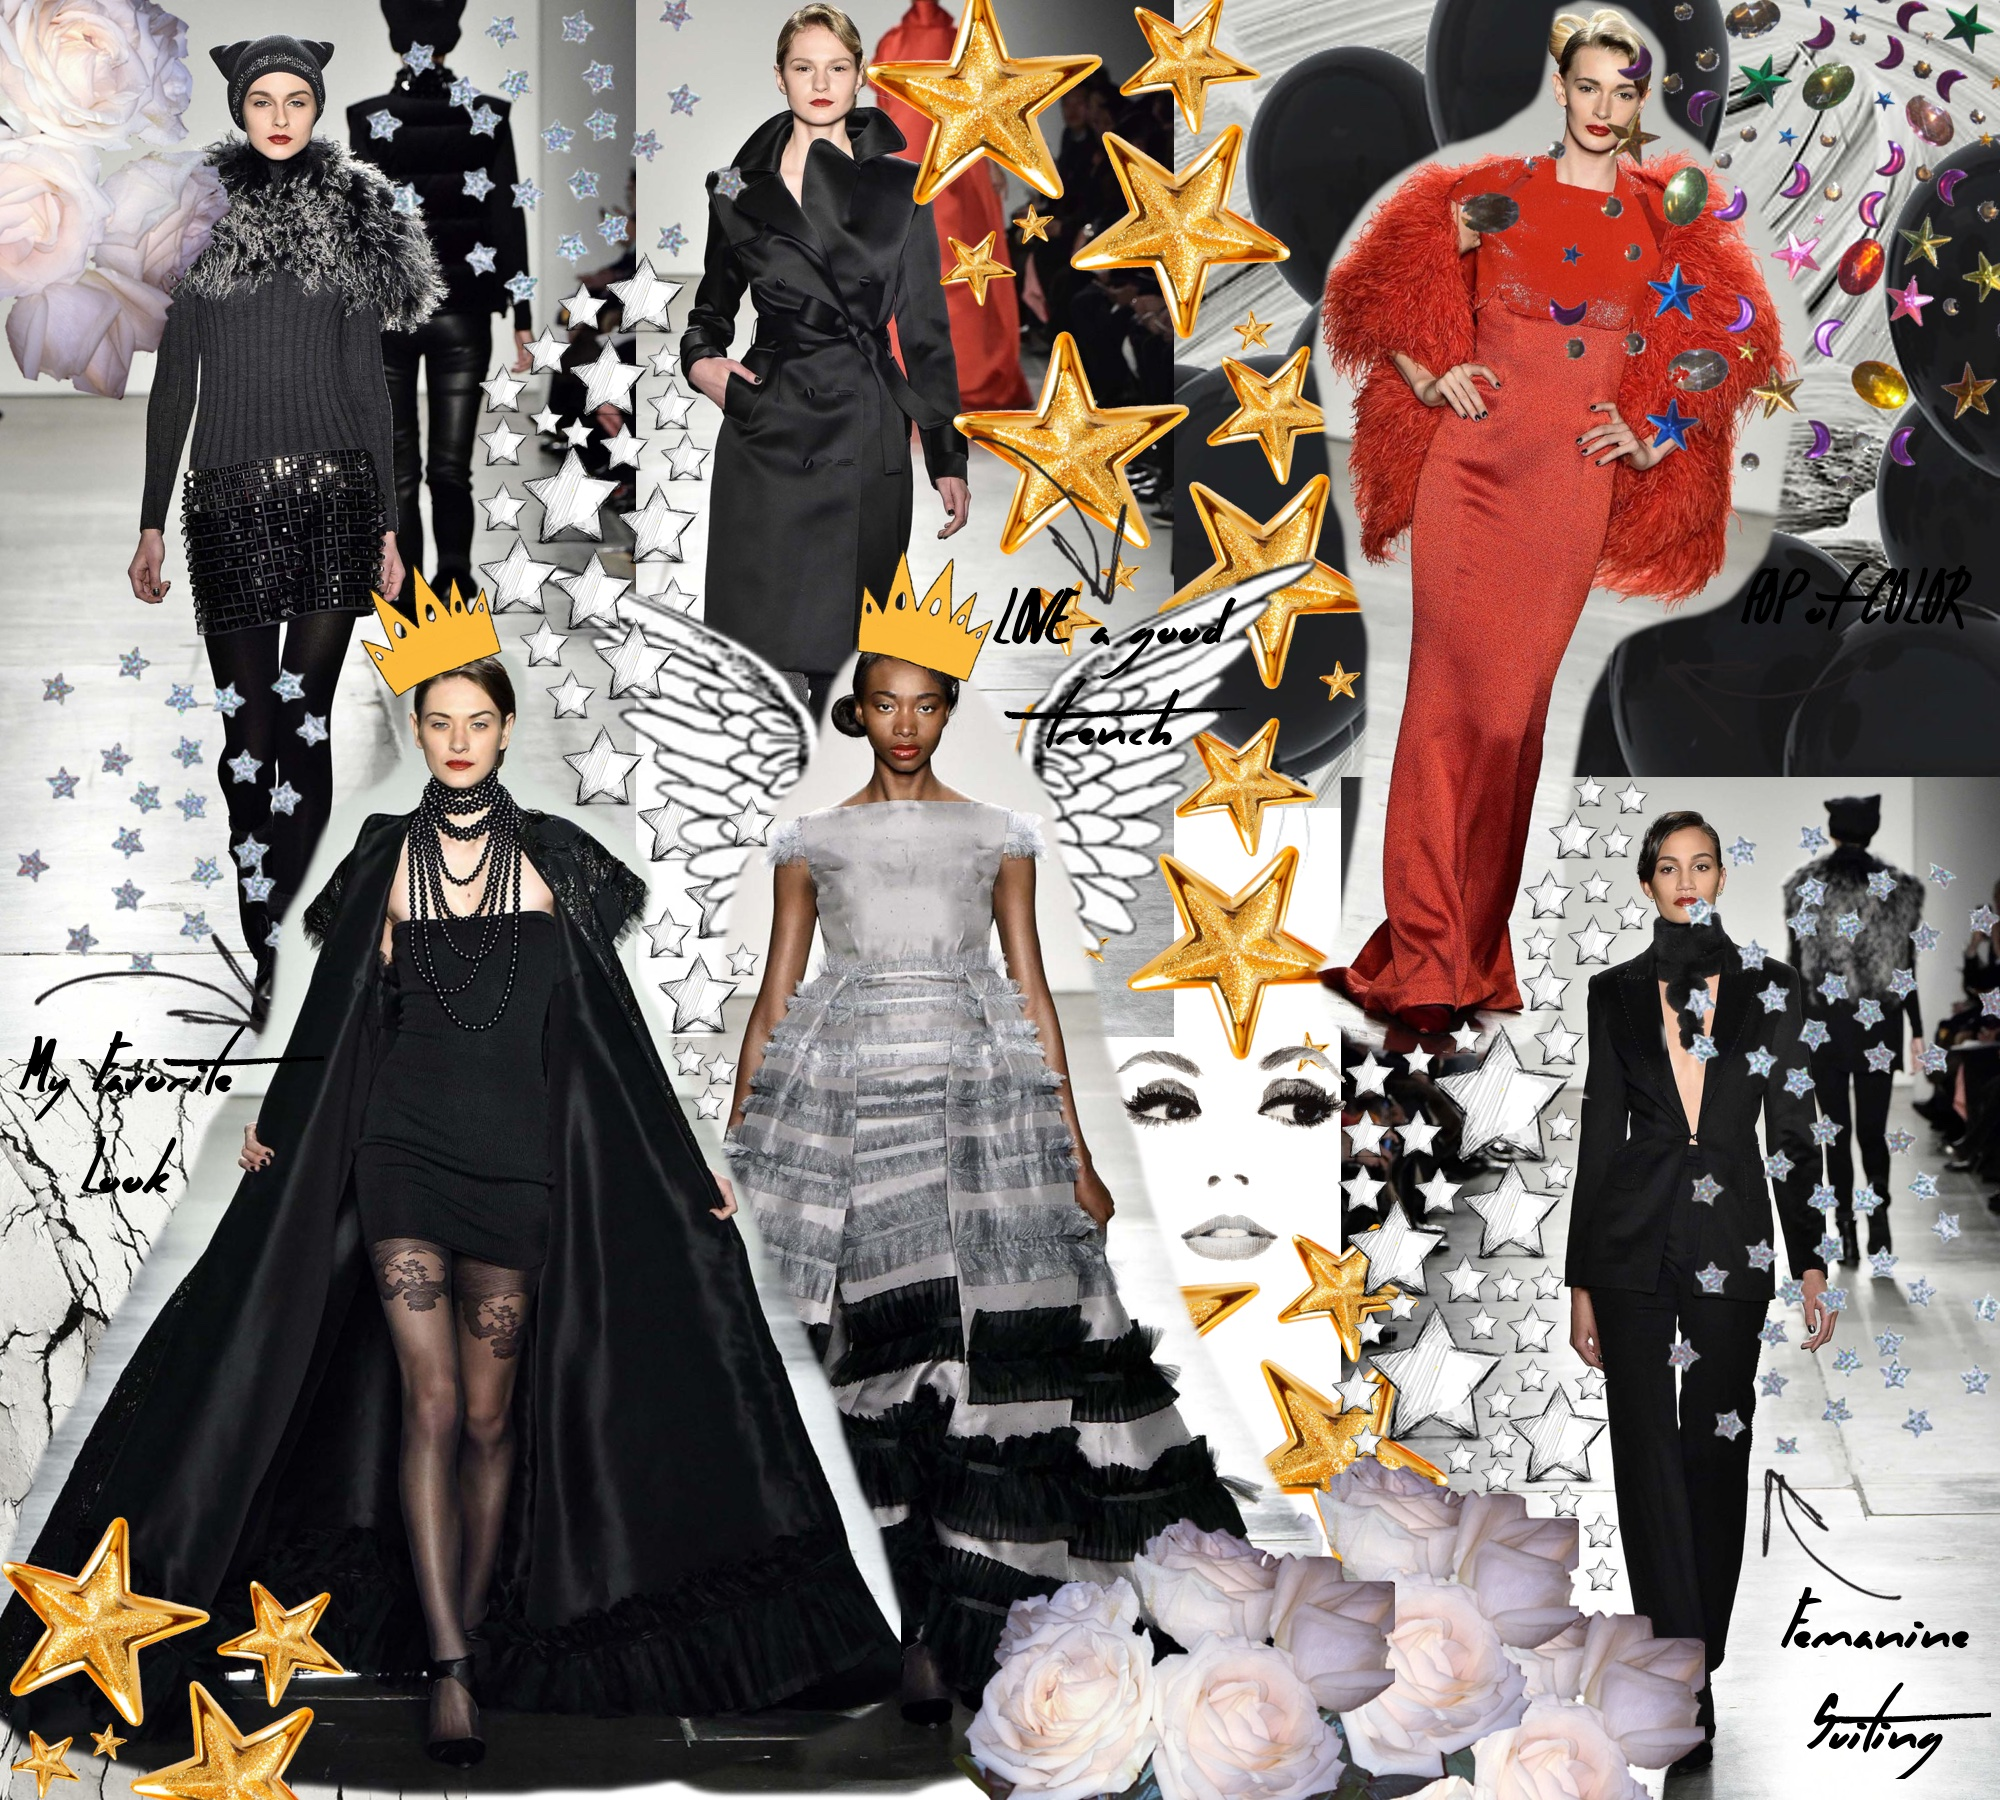 Zang Toi Fall 2016 Runway Show New York Fashion Week: To Style, With Love